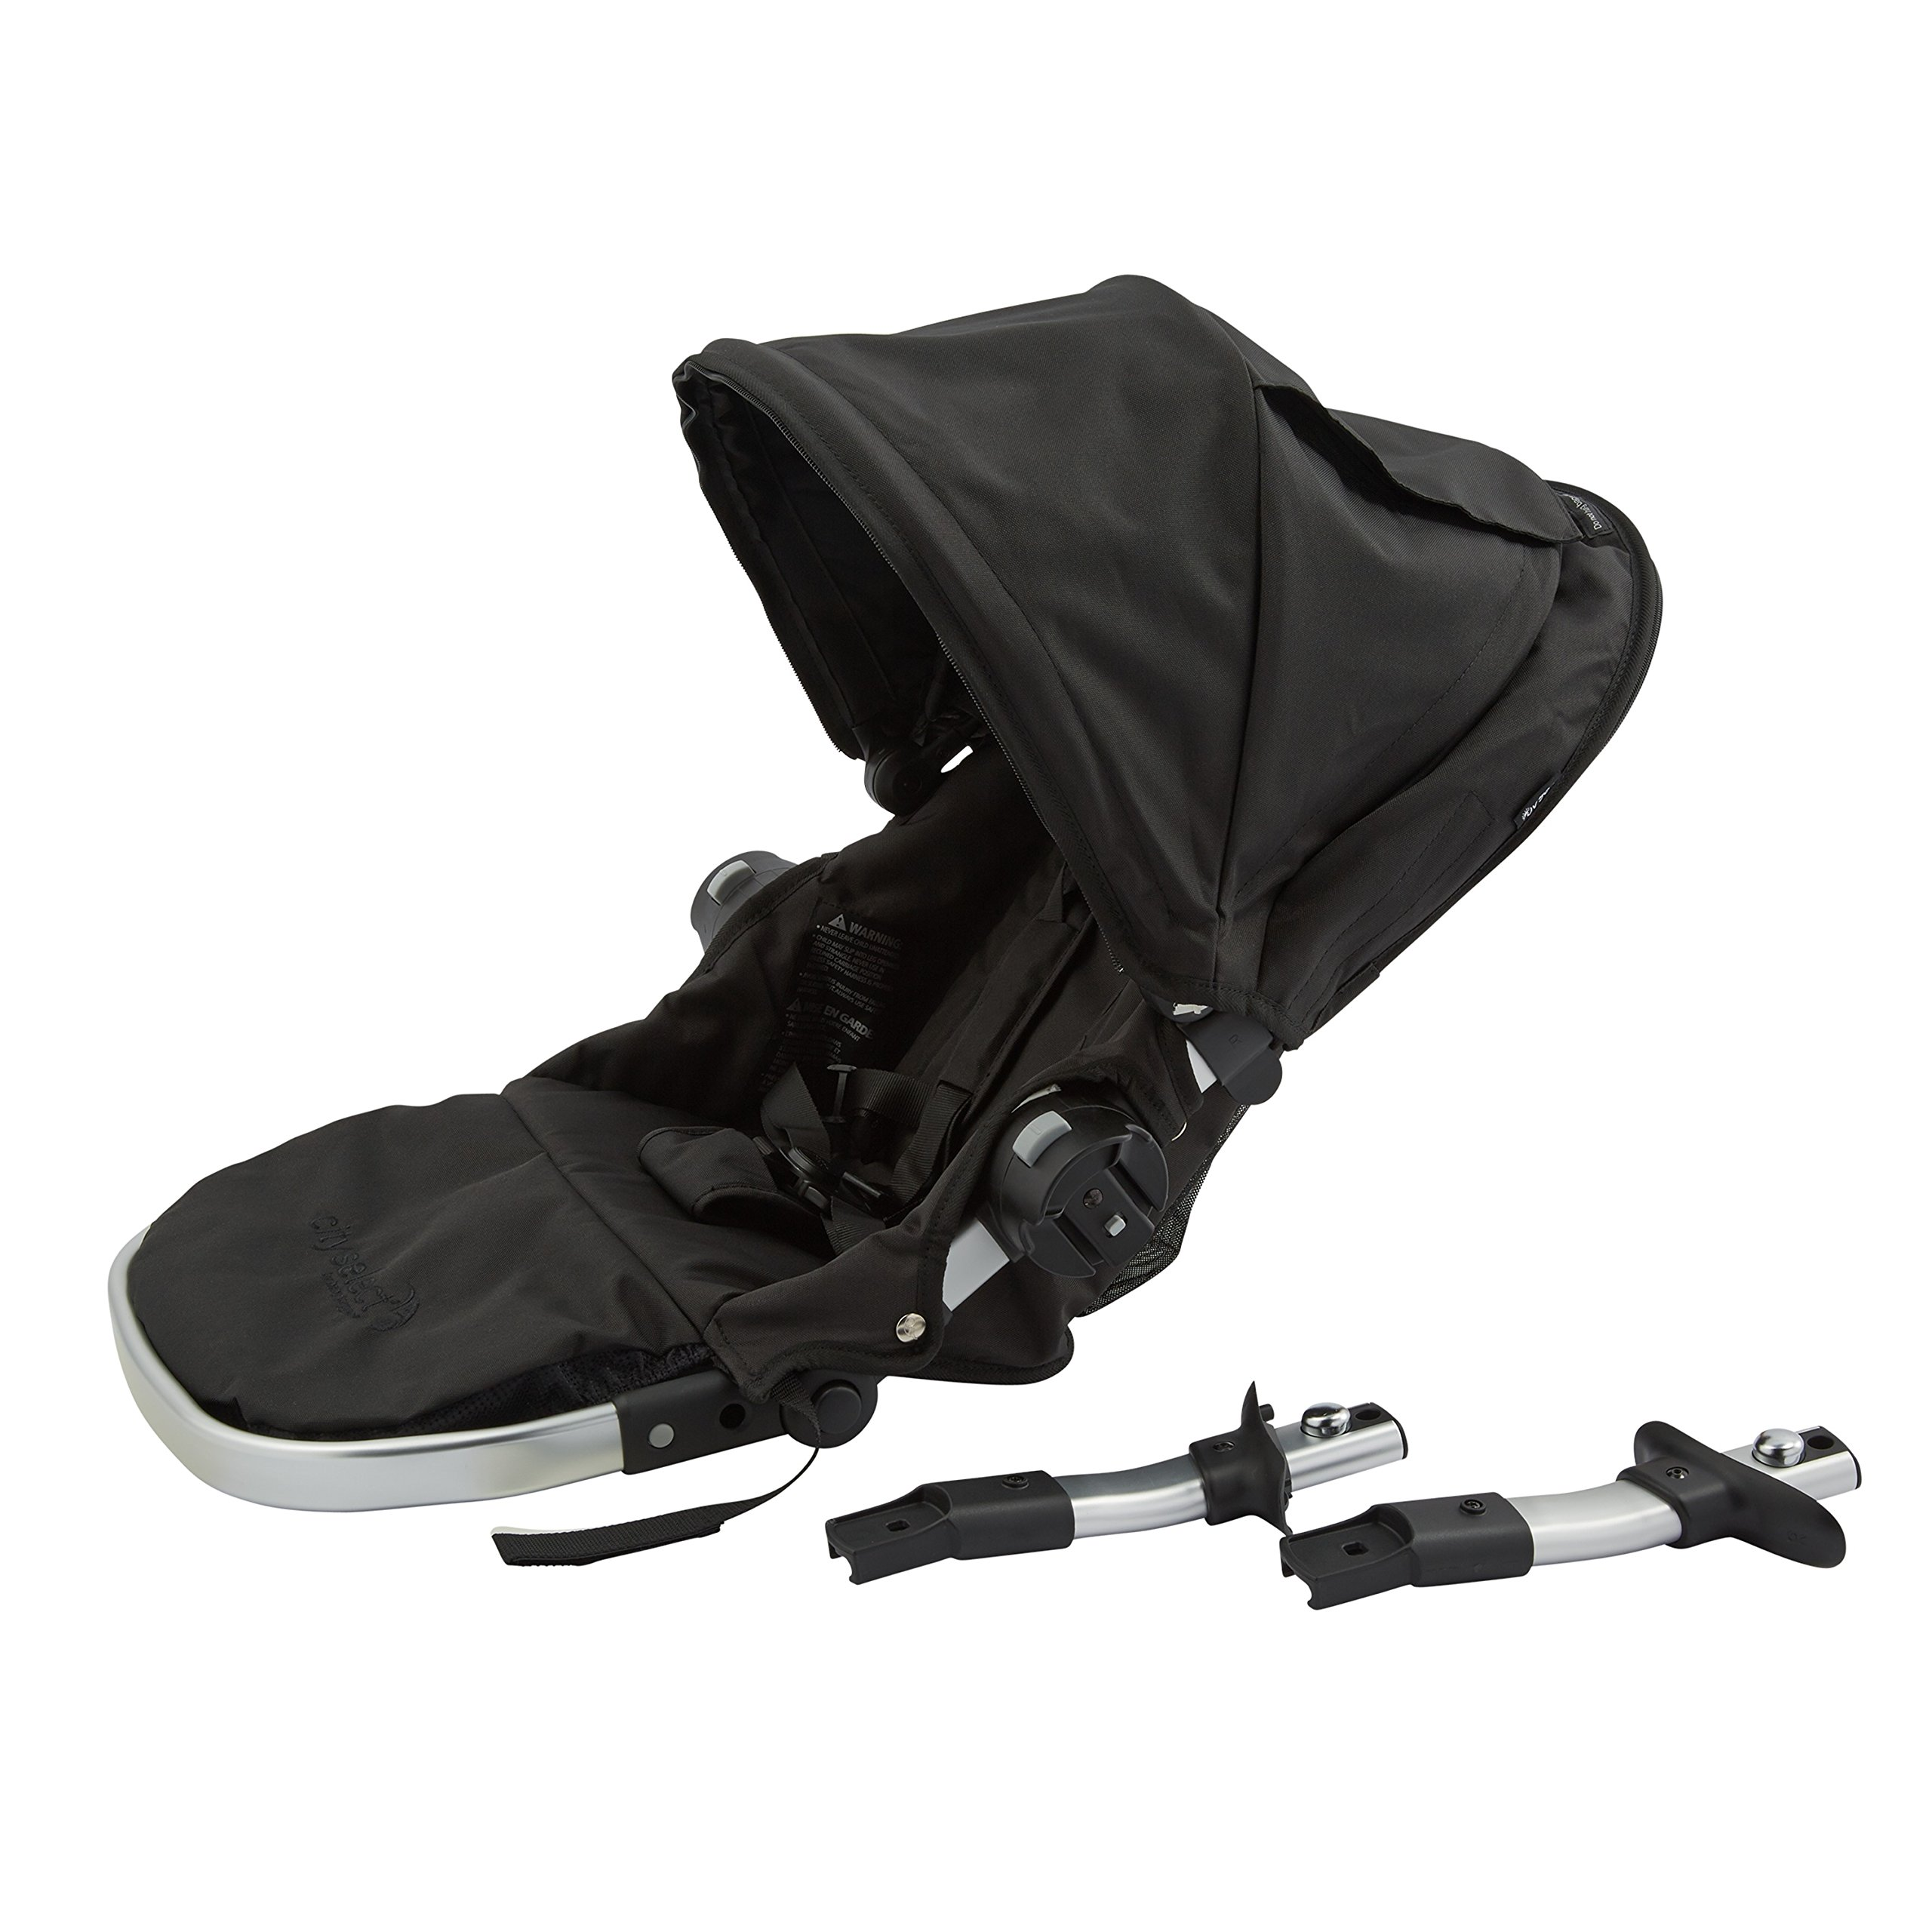 Baby Jogger City Select Second Seat Kit with Silver Frame, Onyx by Baby Jogger (Image #2)